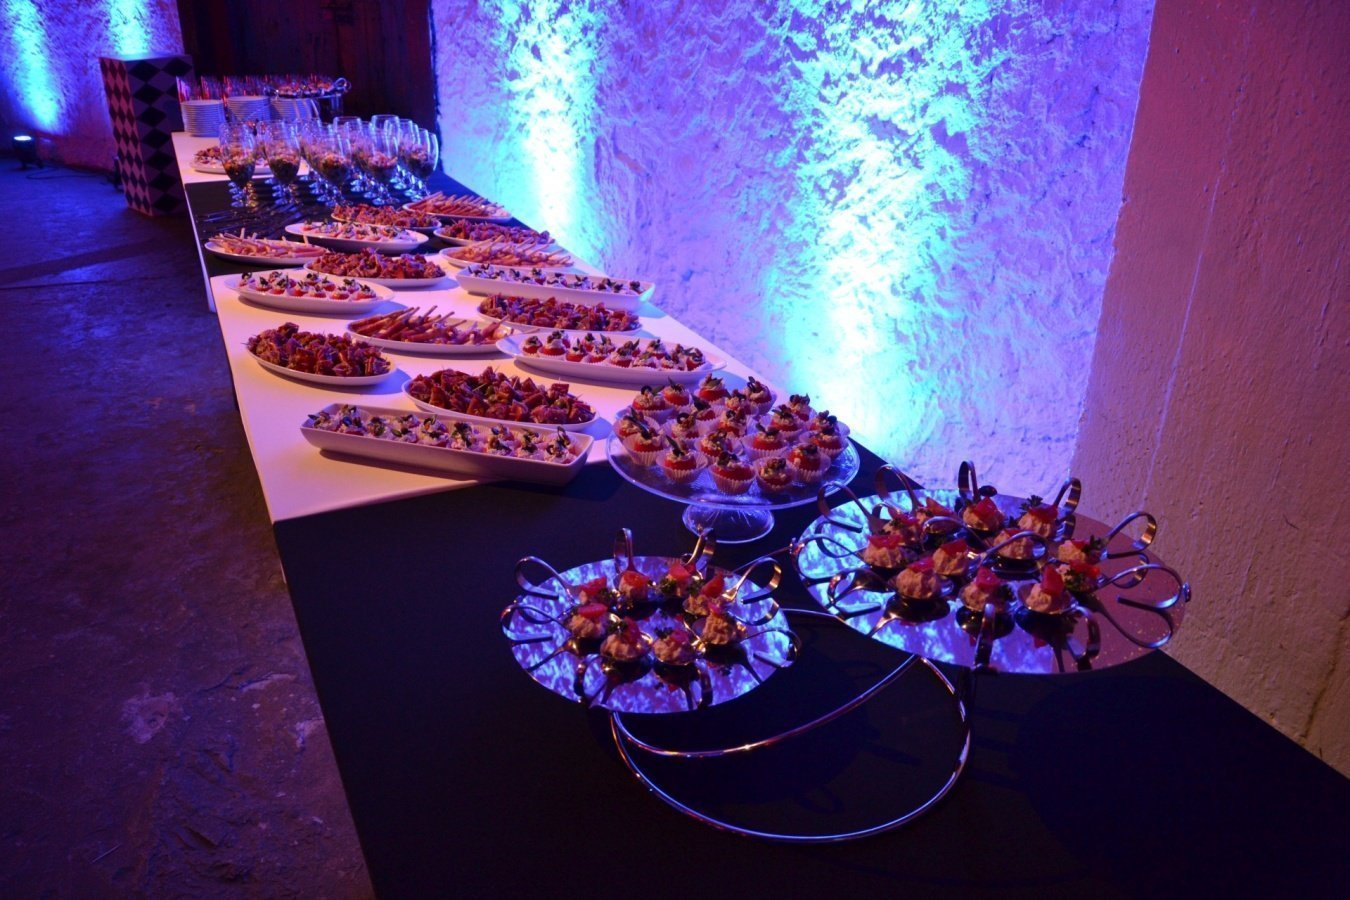 catering/catering_m1.jpg